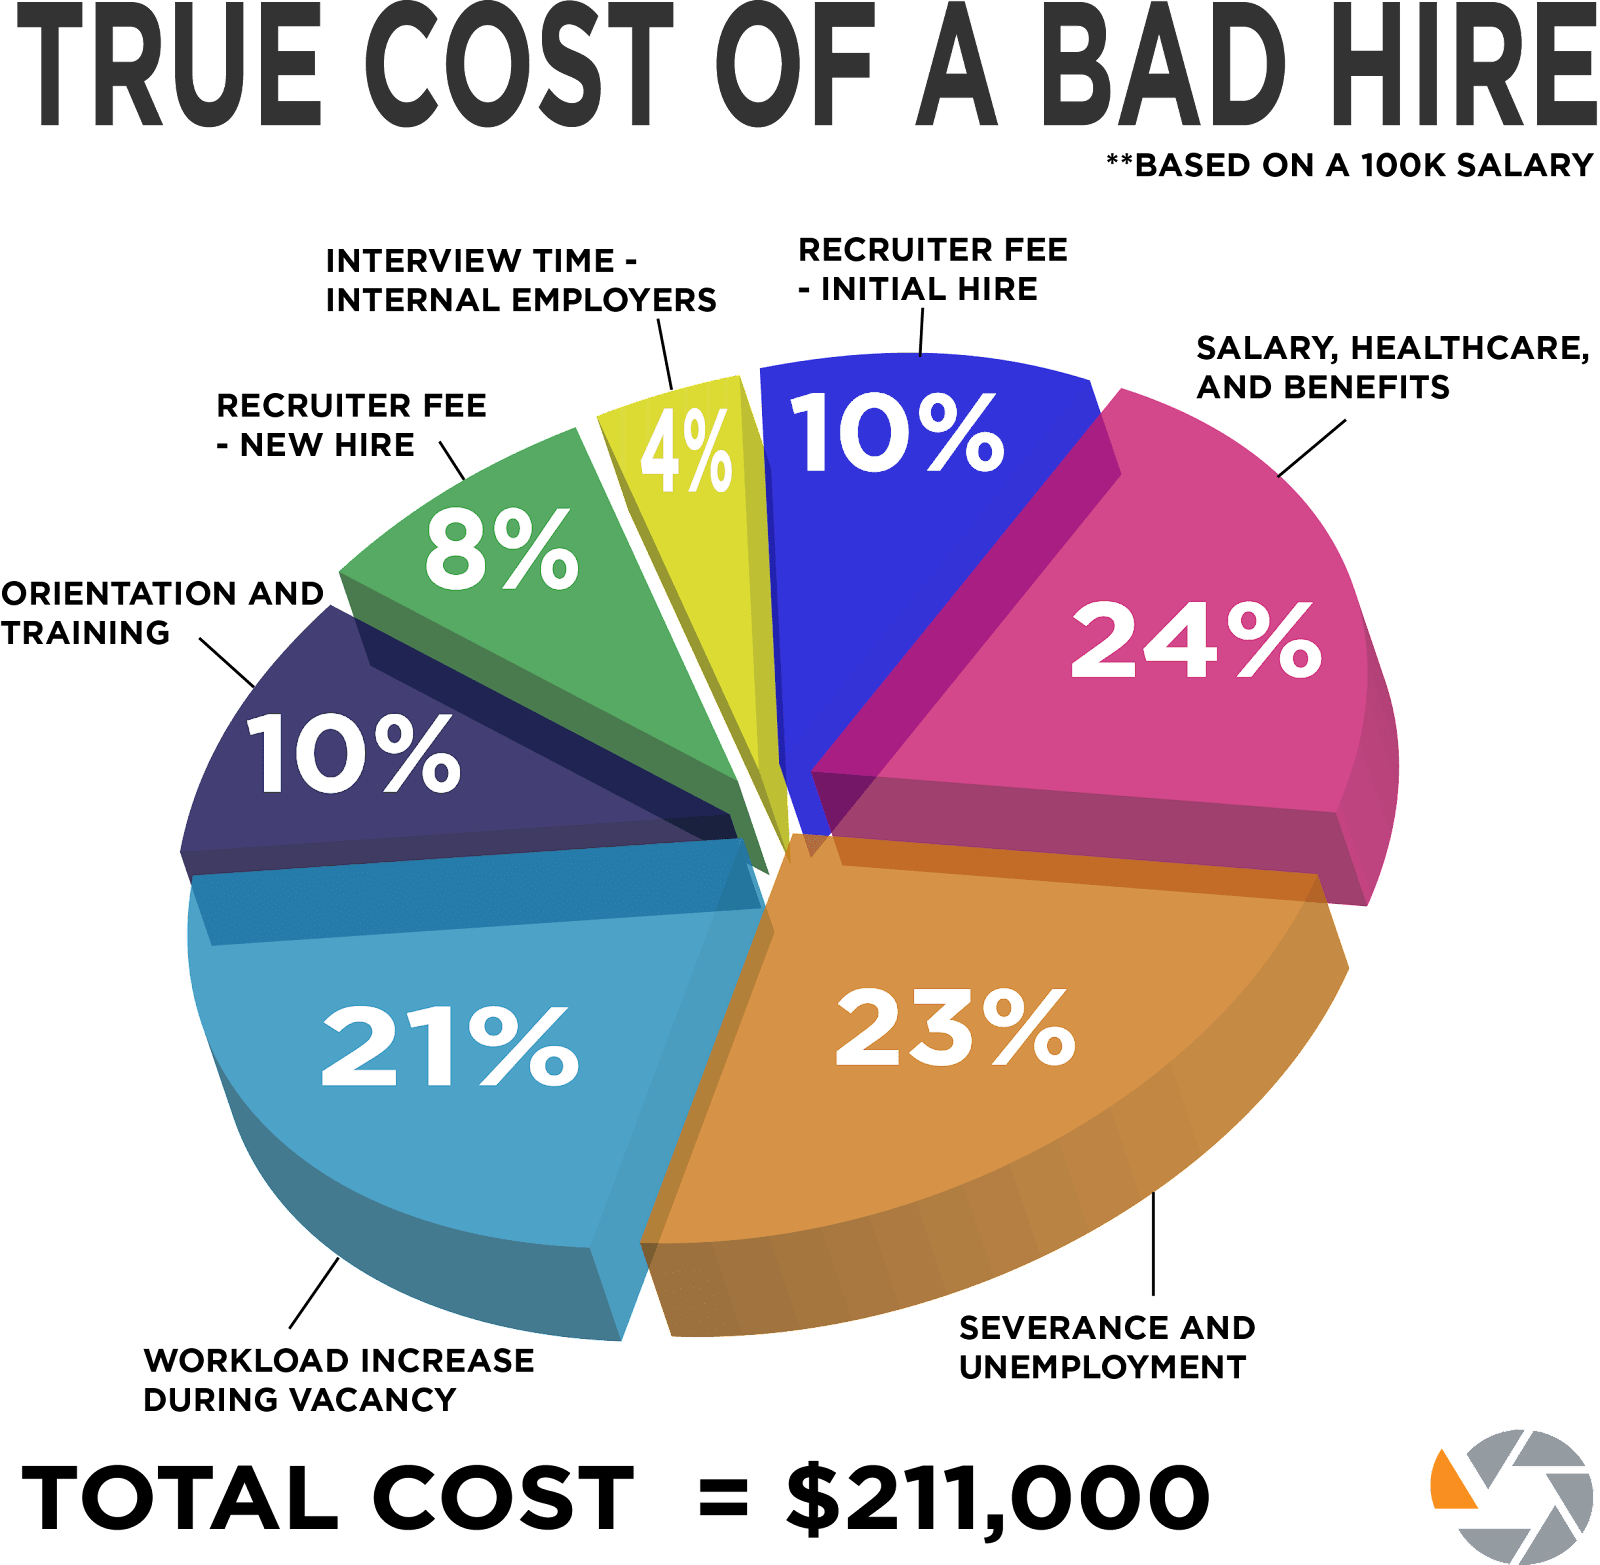 True cost of a bad hire is $211,000